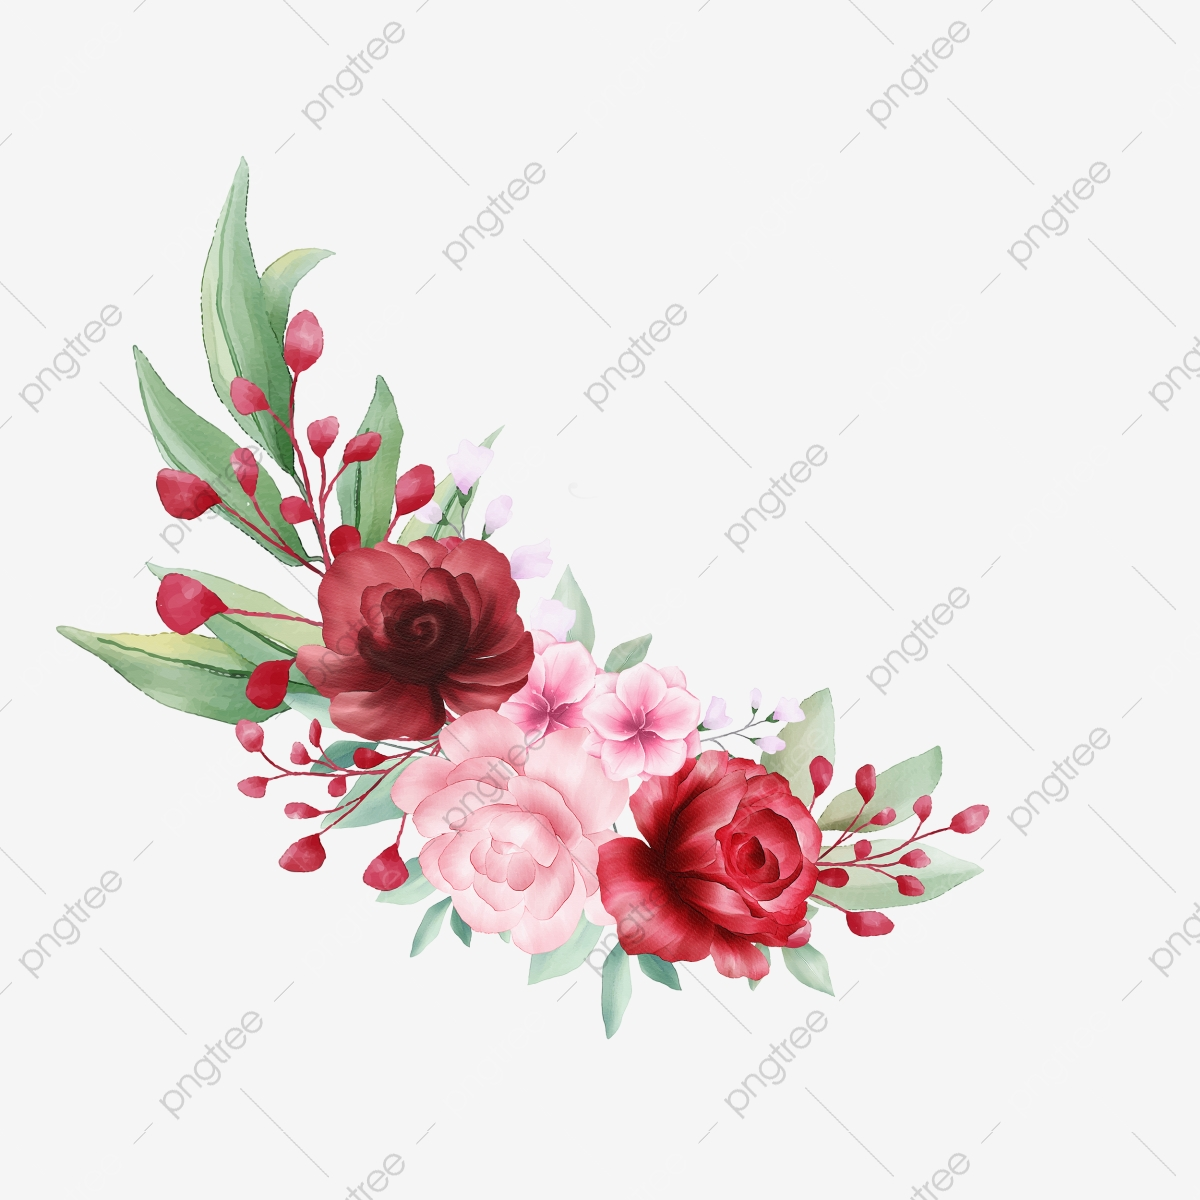 Flower Bouquet Png Vector Psd And Clipart With Transparent Background For Free Download Pngtree